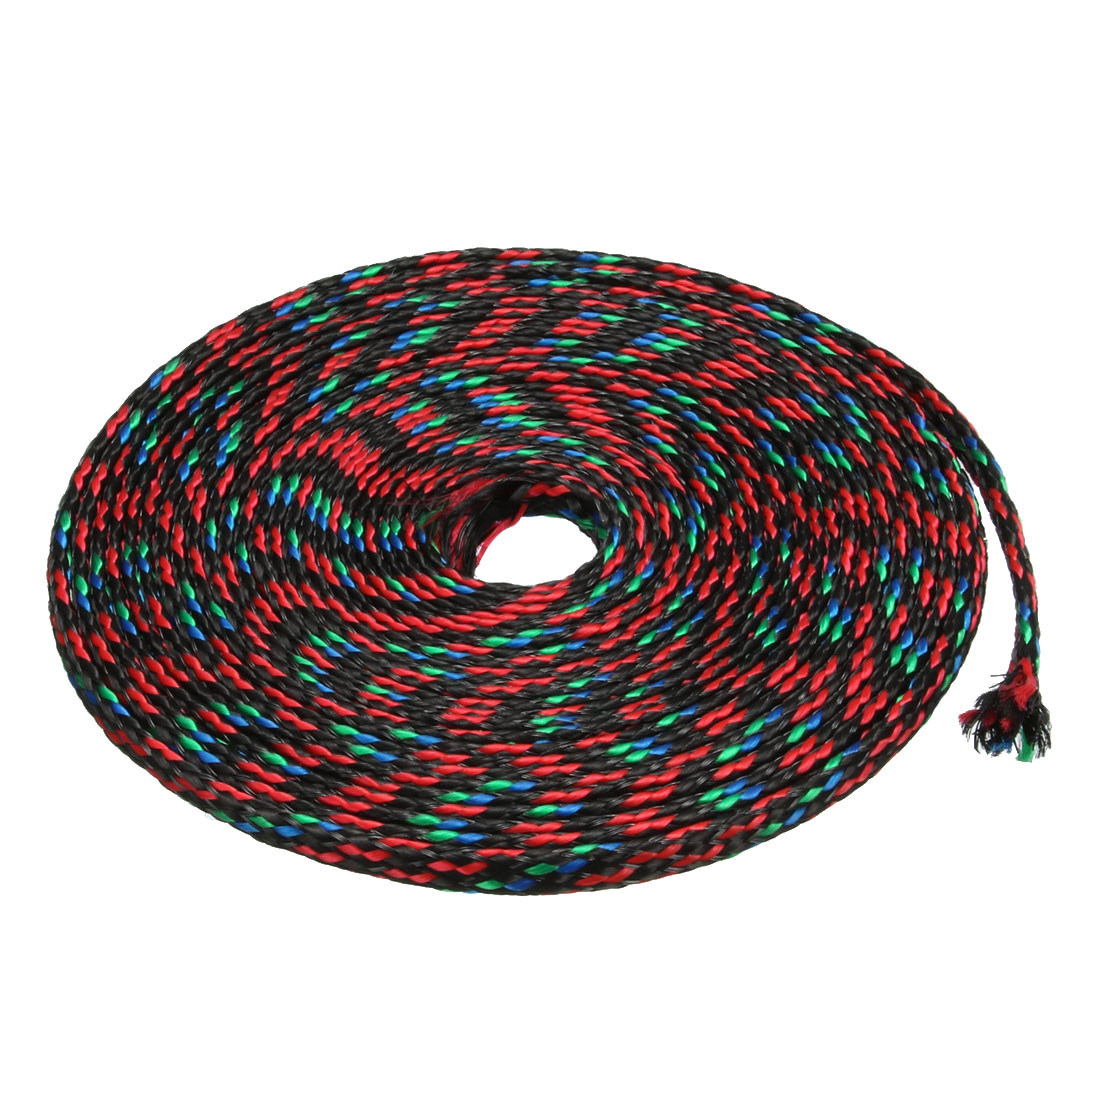 4mm Dia Tight Braided PET Expandable Sleeving Cable Wrap Sheath Multicolor 5M